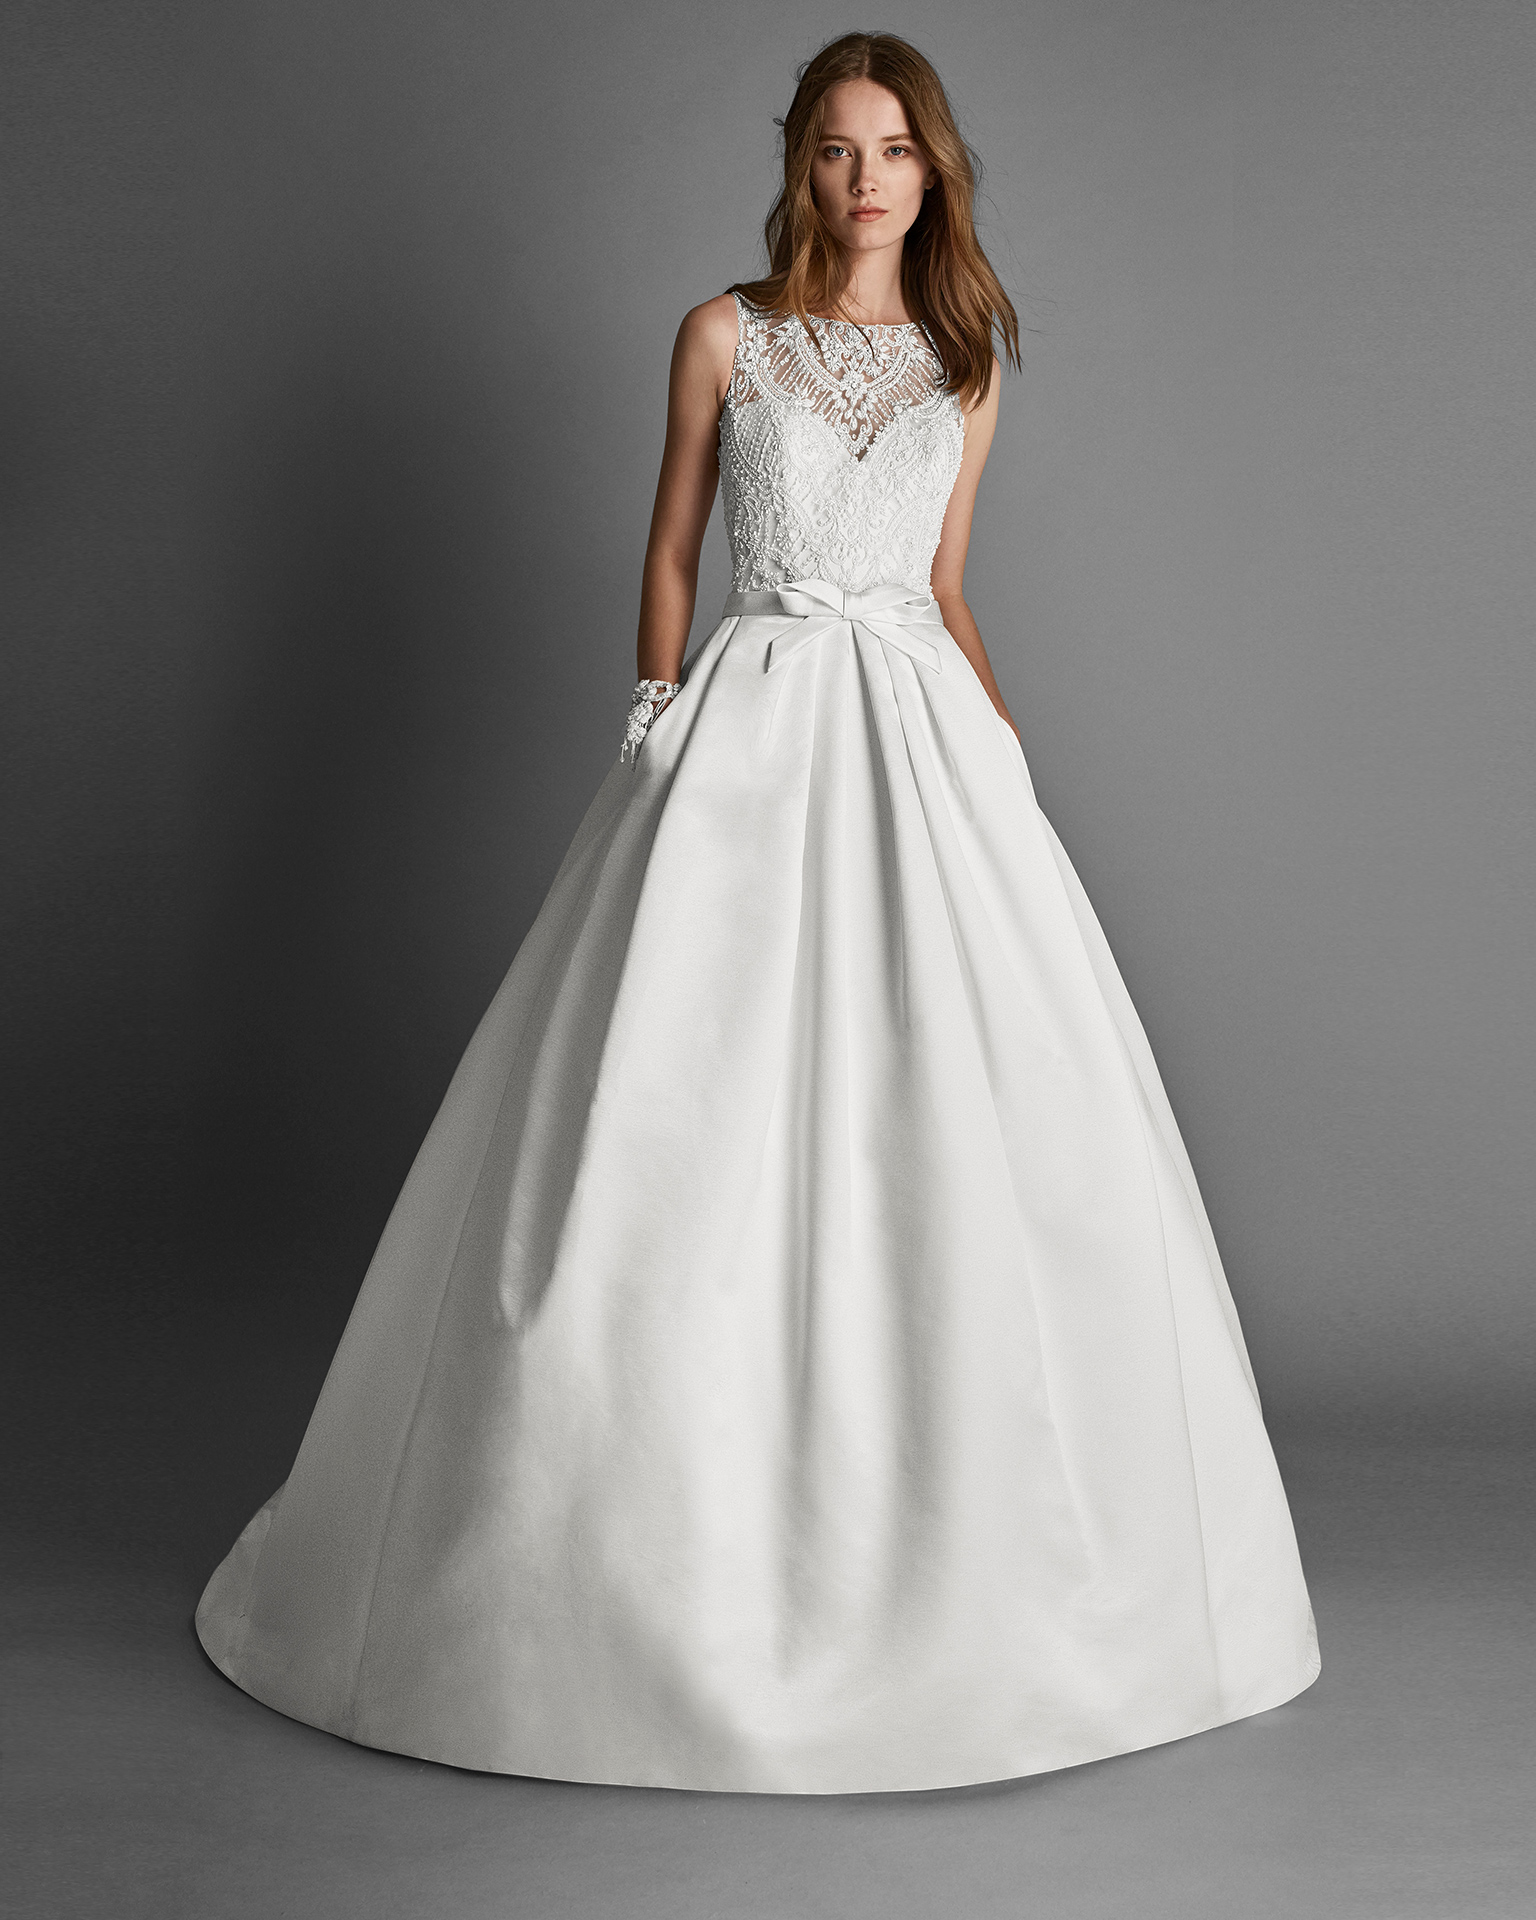 Classic-style beaded lace and duchess satin wedding dress with halter neckline, beaded embroidery back and pockets, in ivory.